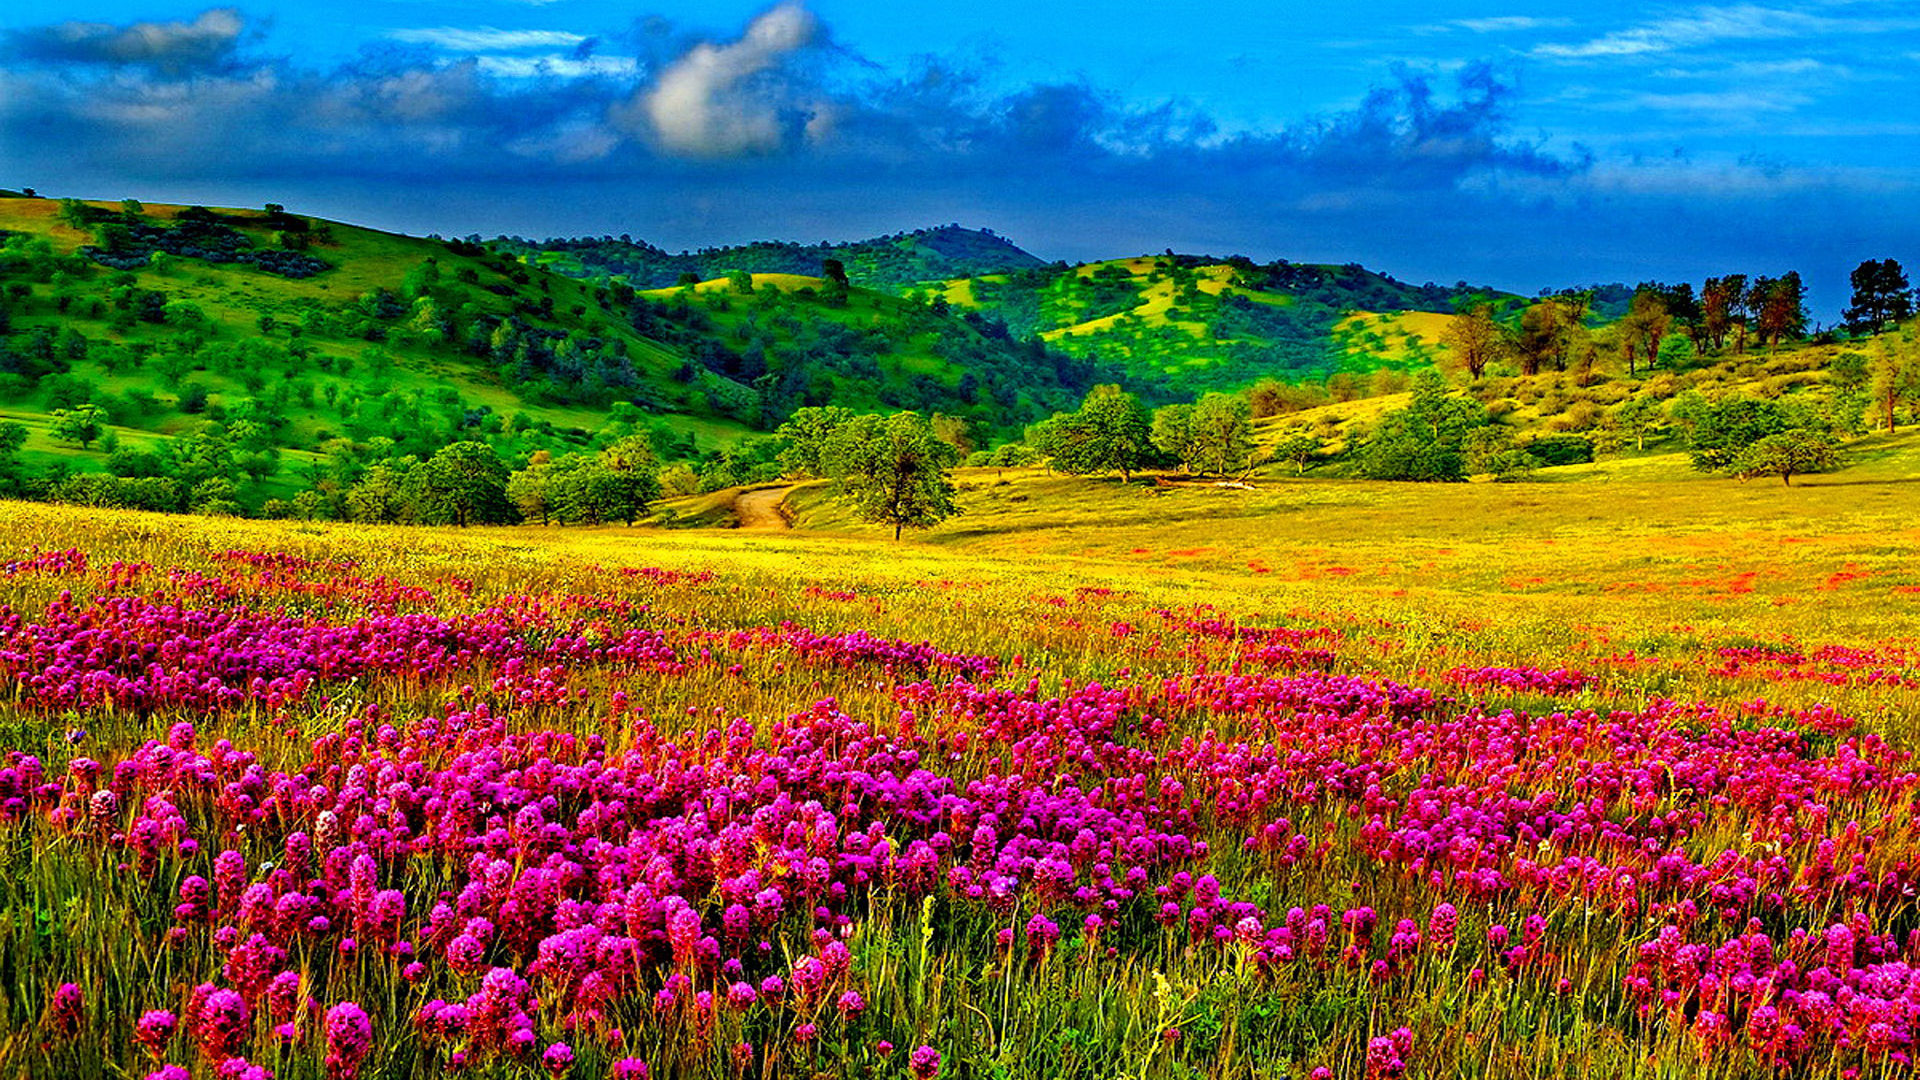 Fall Flowers Desktop Background Wallpaper Meadow With Purple Flowers Hills With Trees And Green